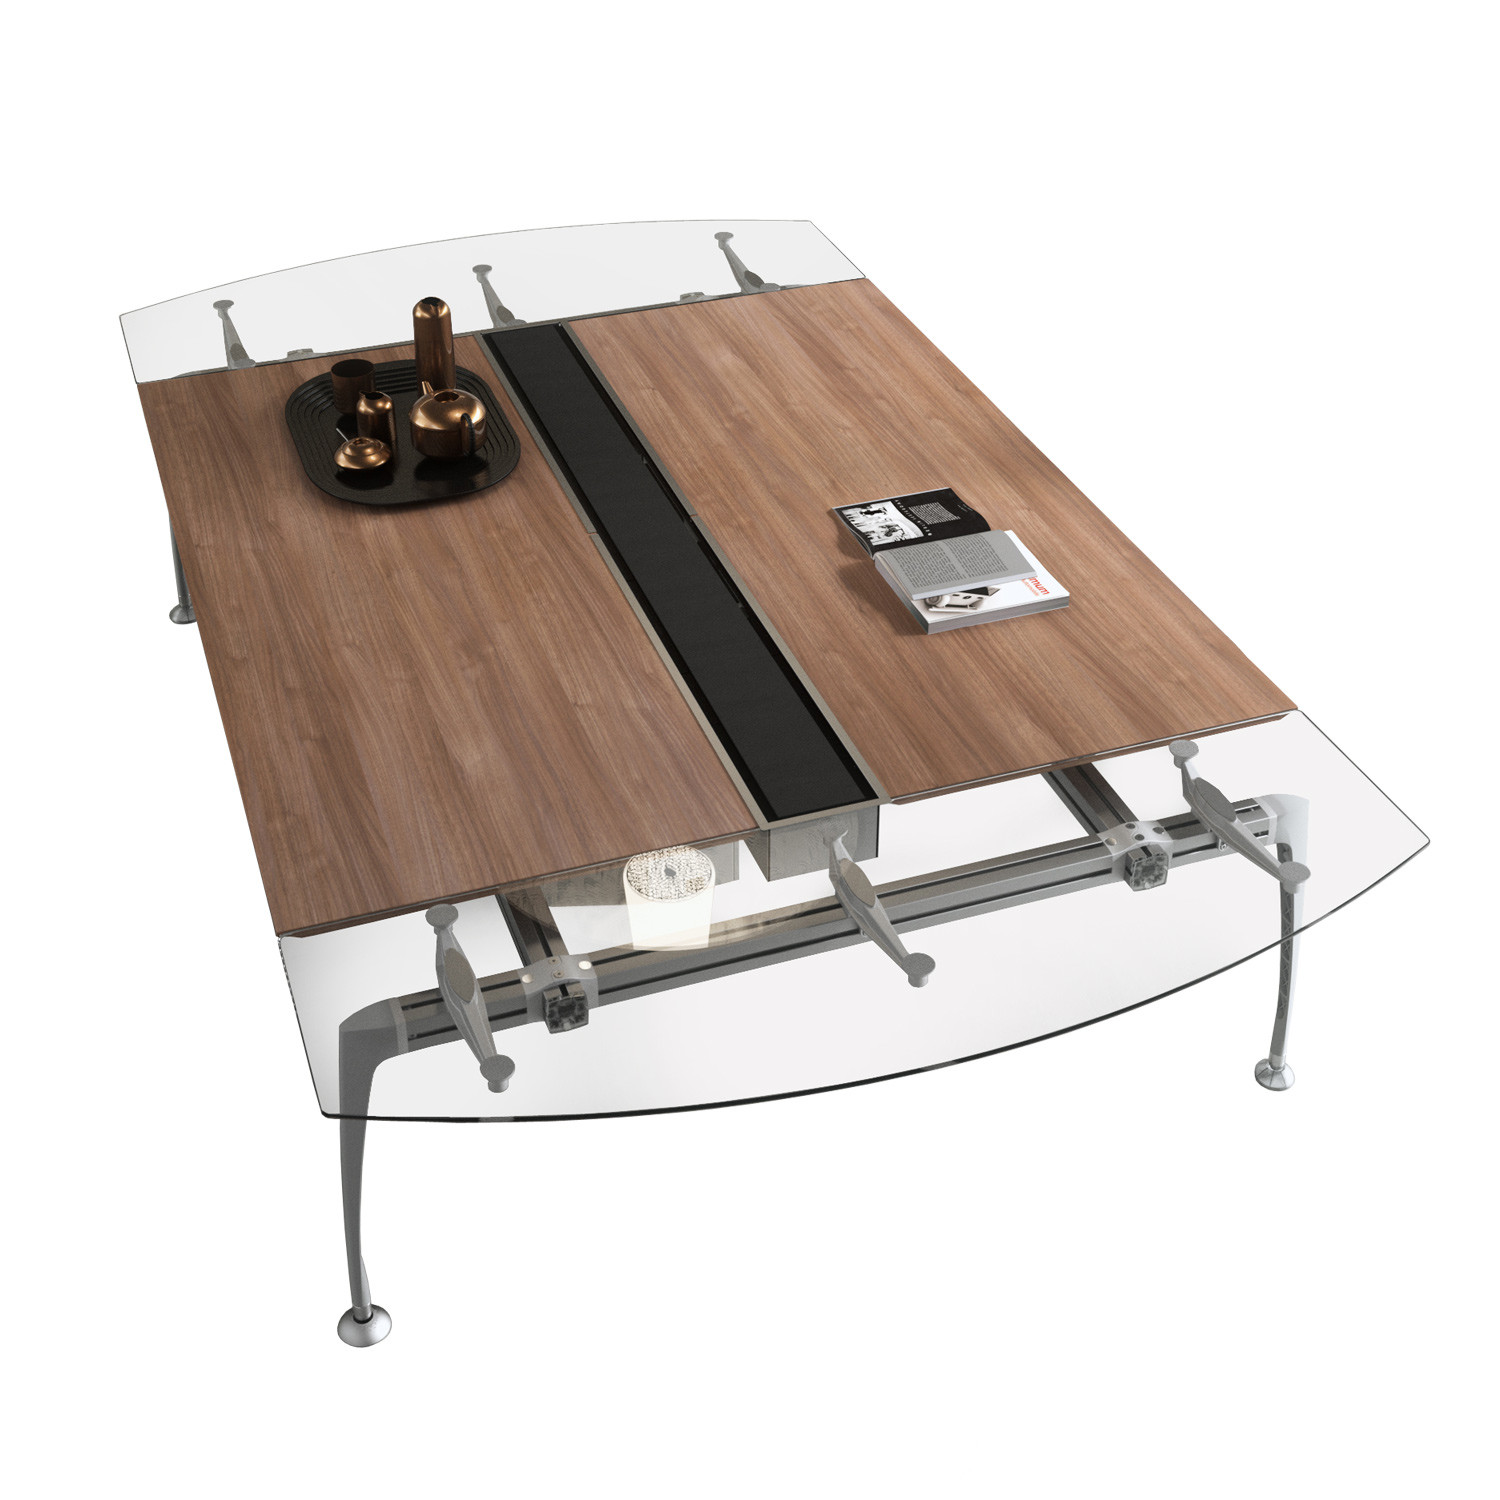 Tipe Combi Meeting Table